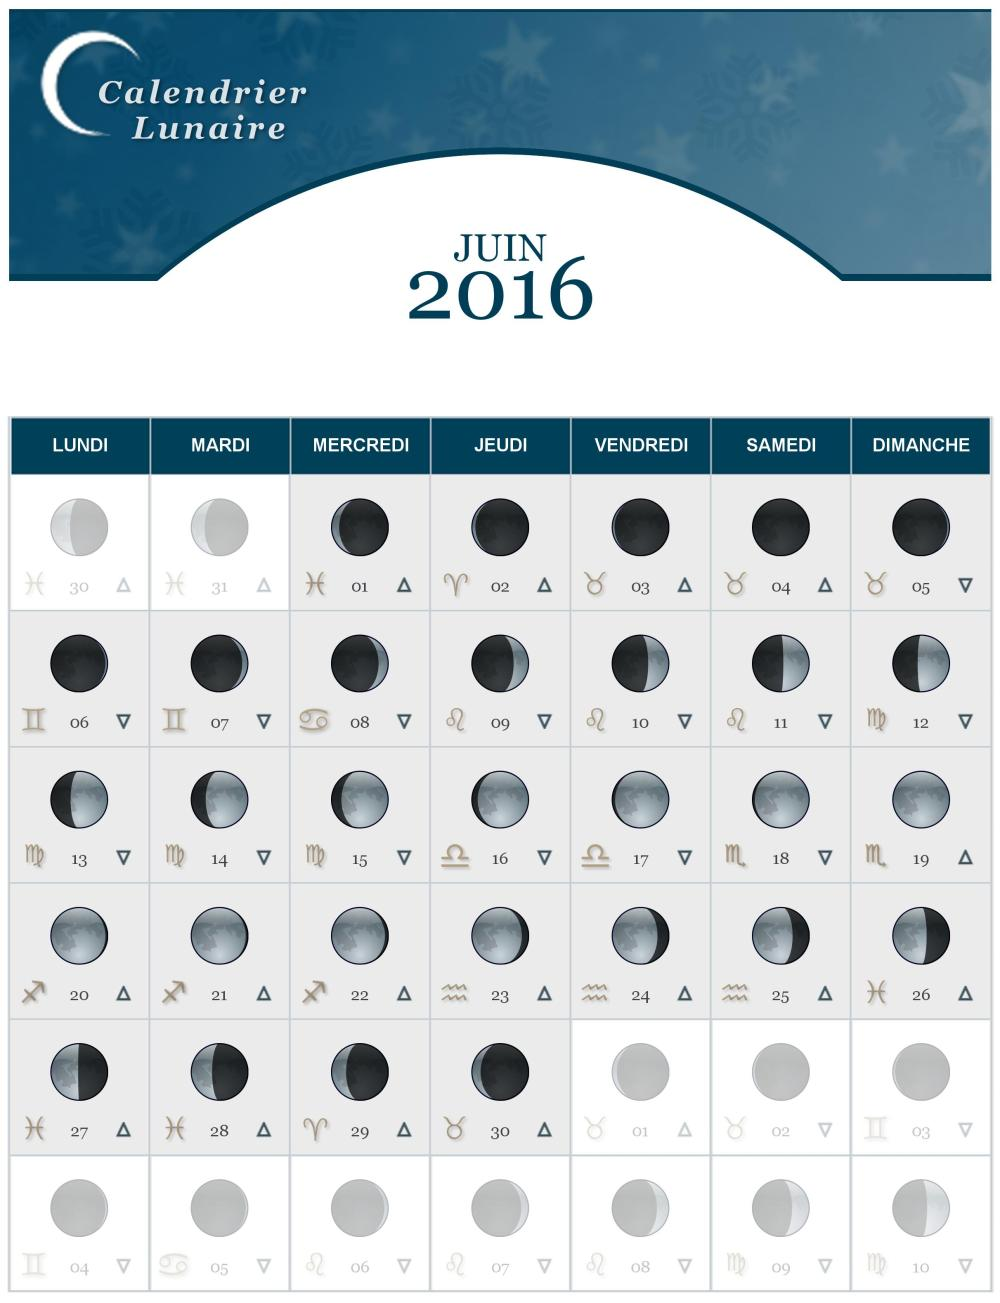 calendrier lunaire du mois de juin 2016 the lucky cath concept. Black Bedroom Furniture Sets. Home Design Ideas